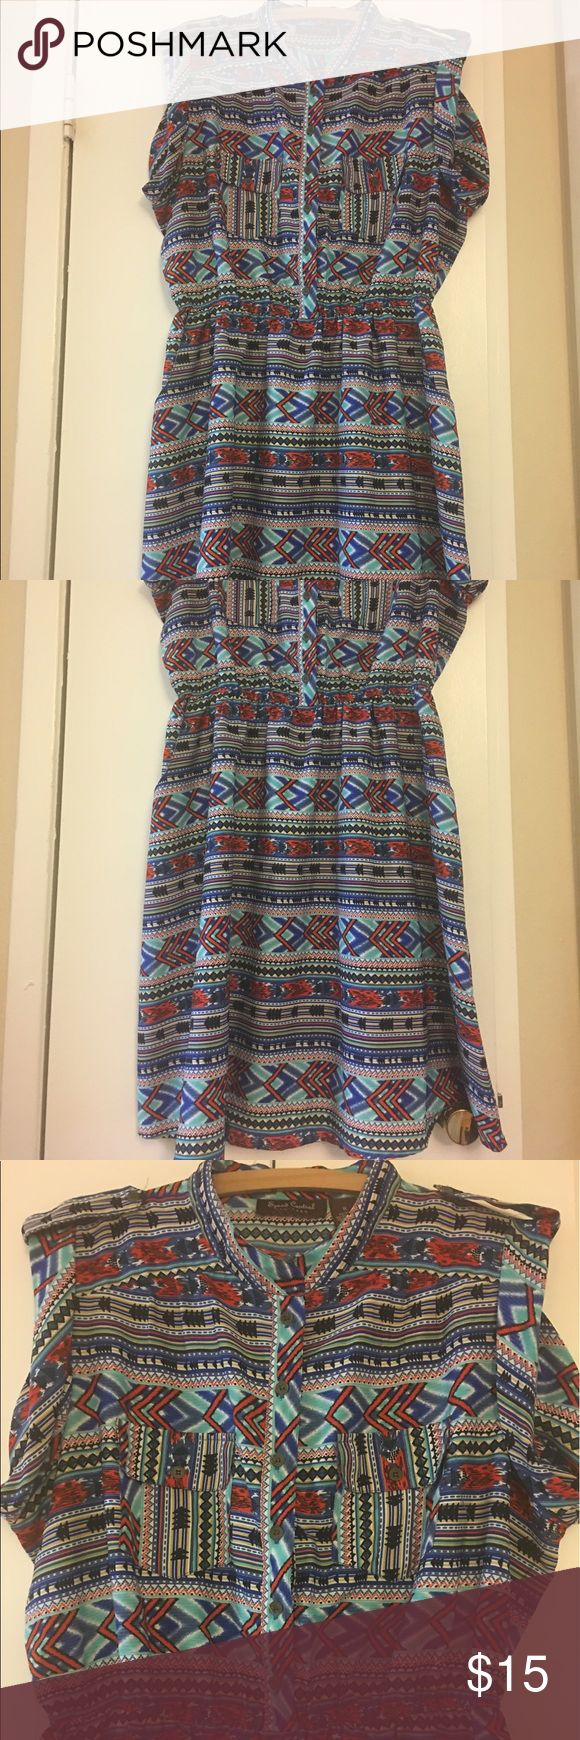 Speed Control Aztec Dress💕 Speed Control Brand. Multi color Aztec button up print dress. Light material. Does not stretch. Two button front pockets and two side pockets on the sides. About 41 inches in length overall. About 201/2 inches armpit to armpit. About 14 inches waist. Waist doesn't stretch much. Speed Control Dresses